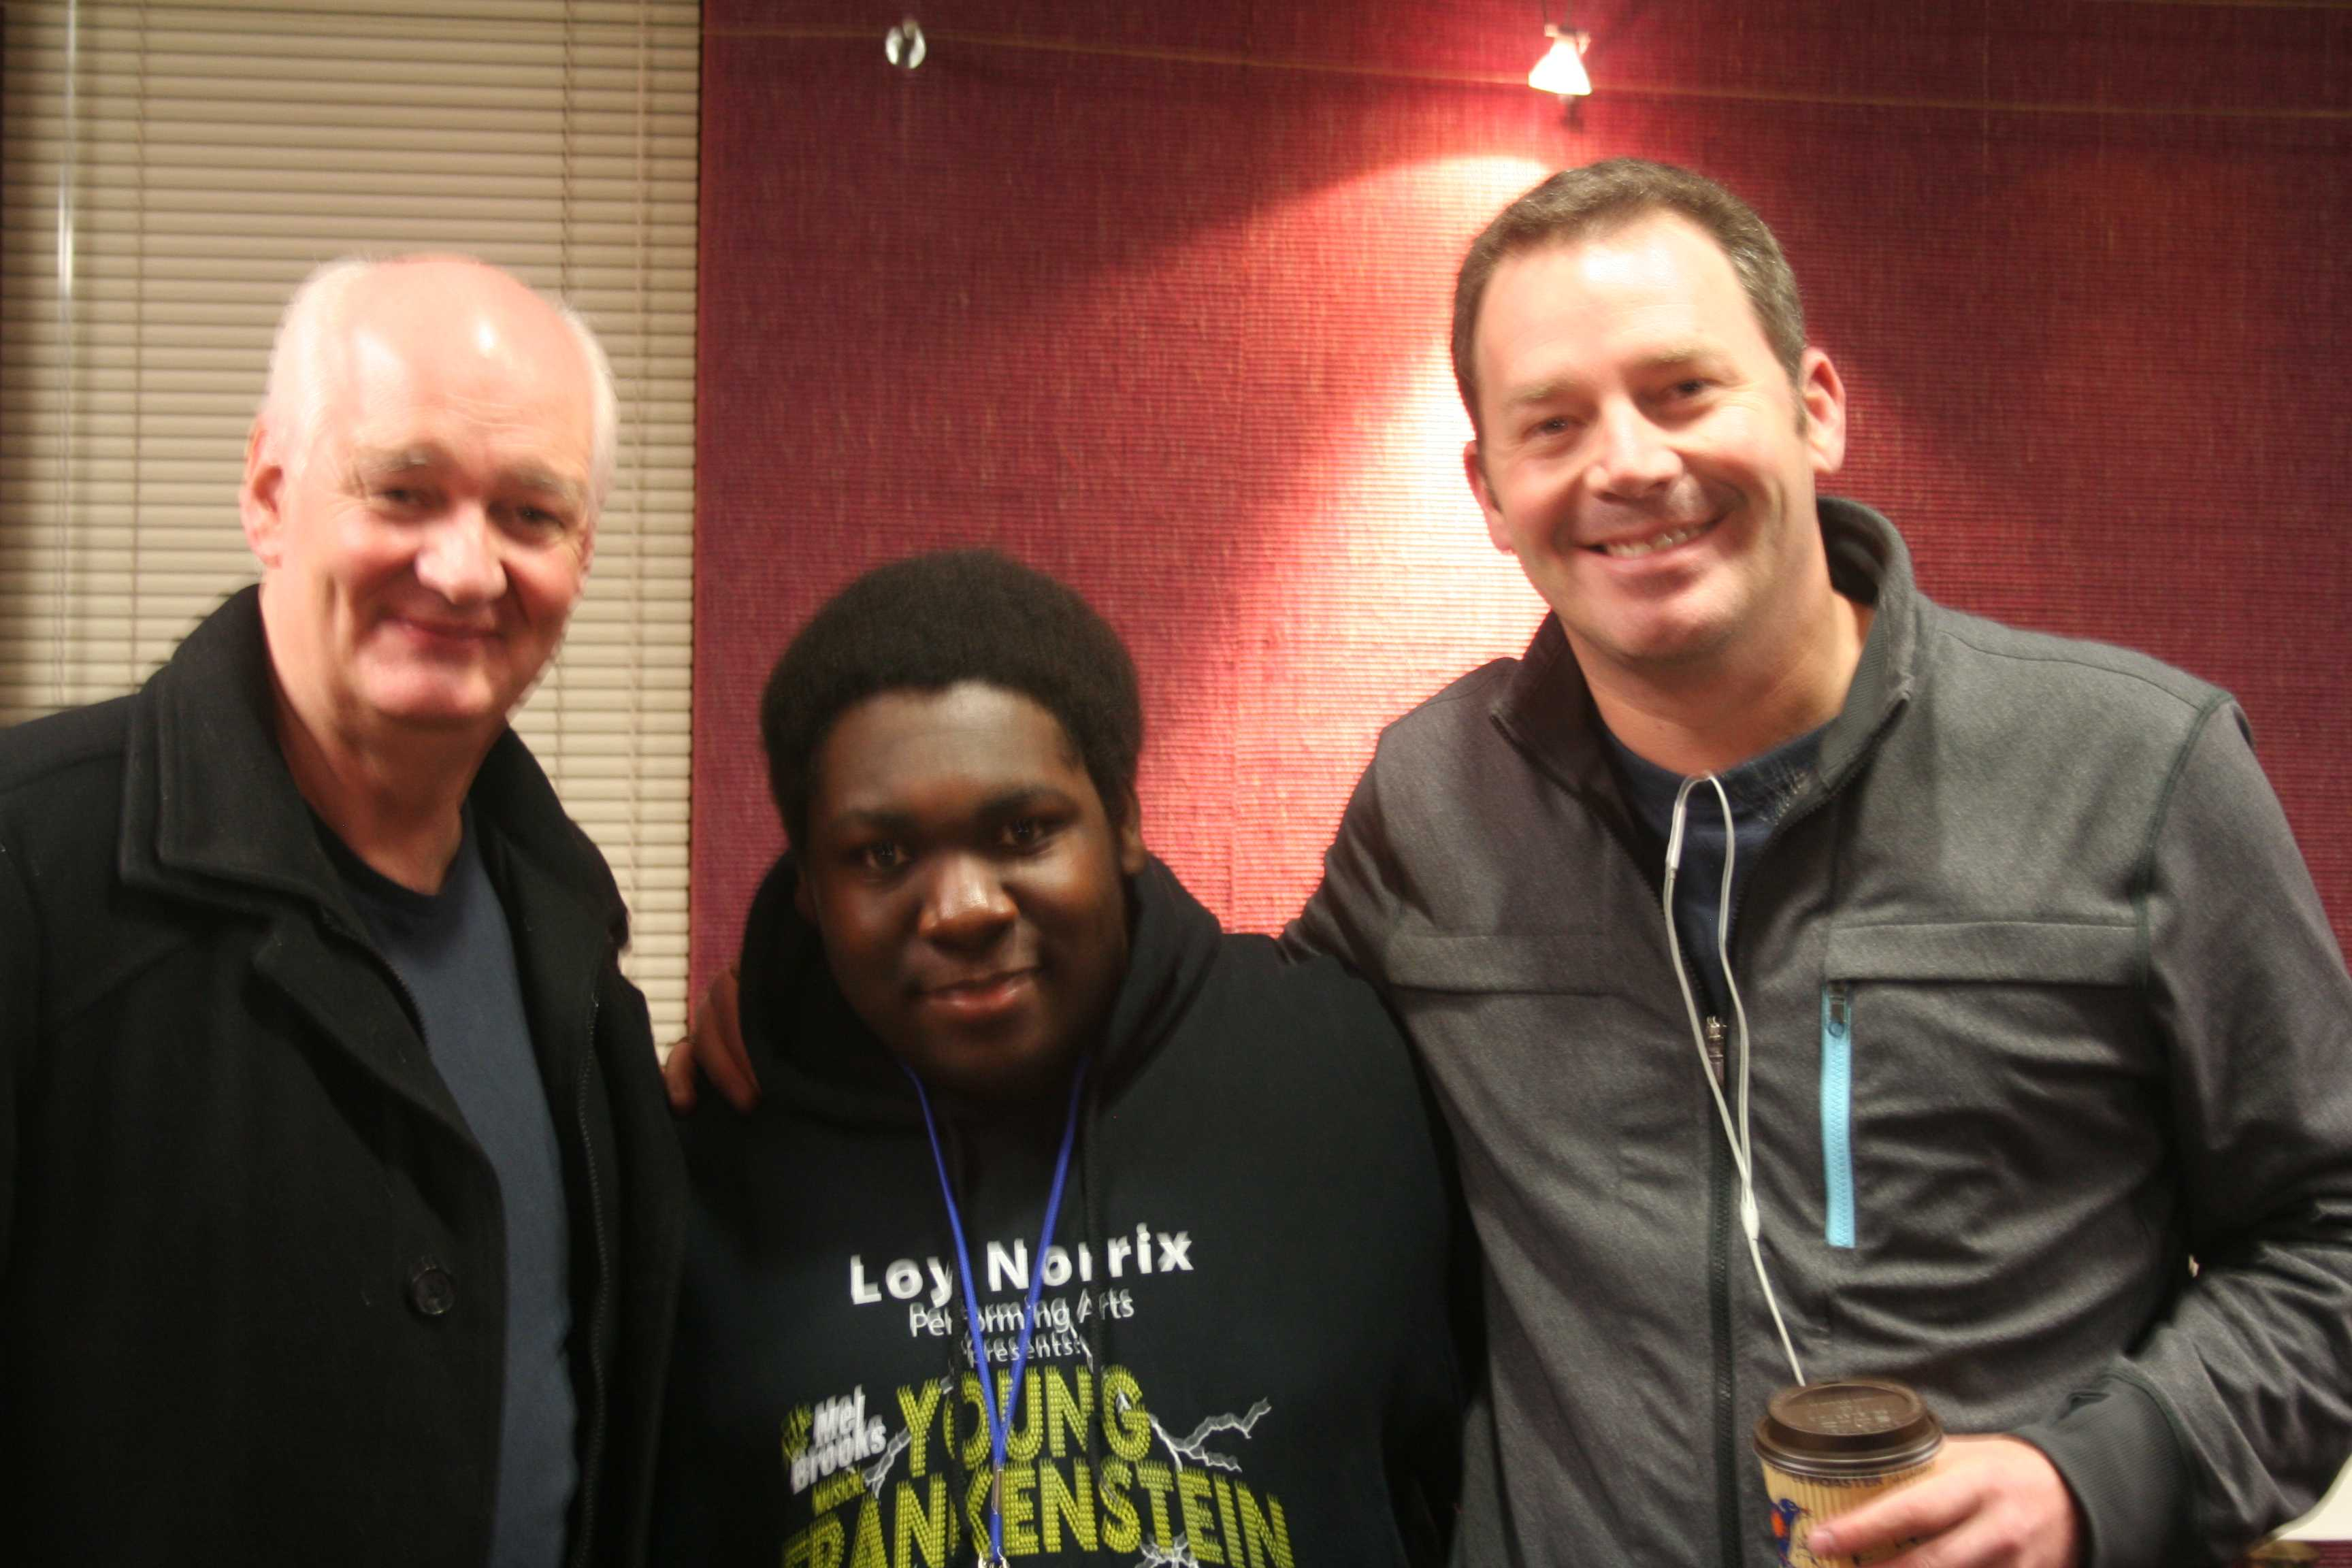 Here we see Loy Norrix sophomore between Colin Mocherie (left) and Brad Sherwood (right), in the Greenroom of Miller Auditorium before their two man improv show.